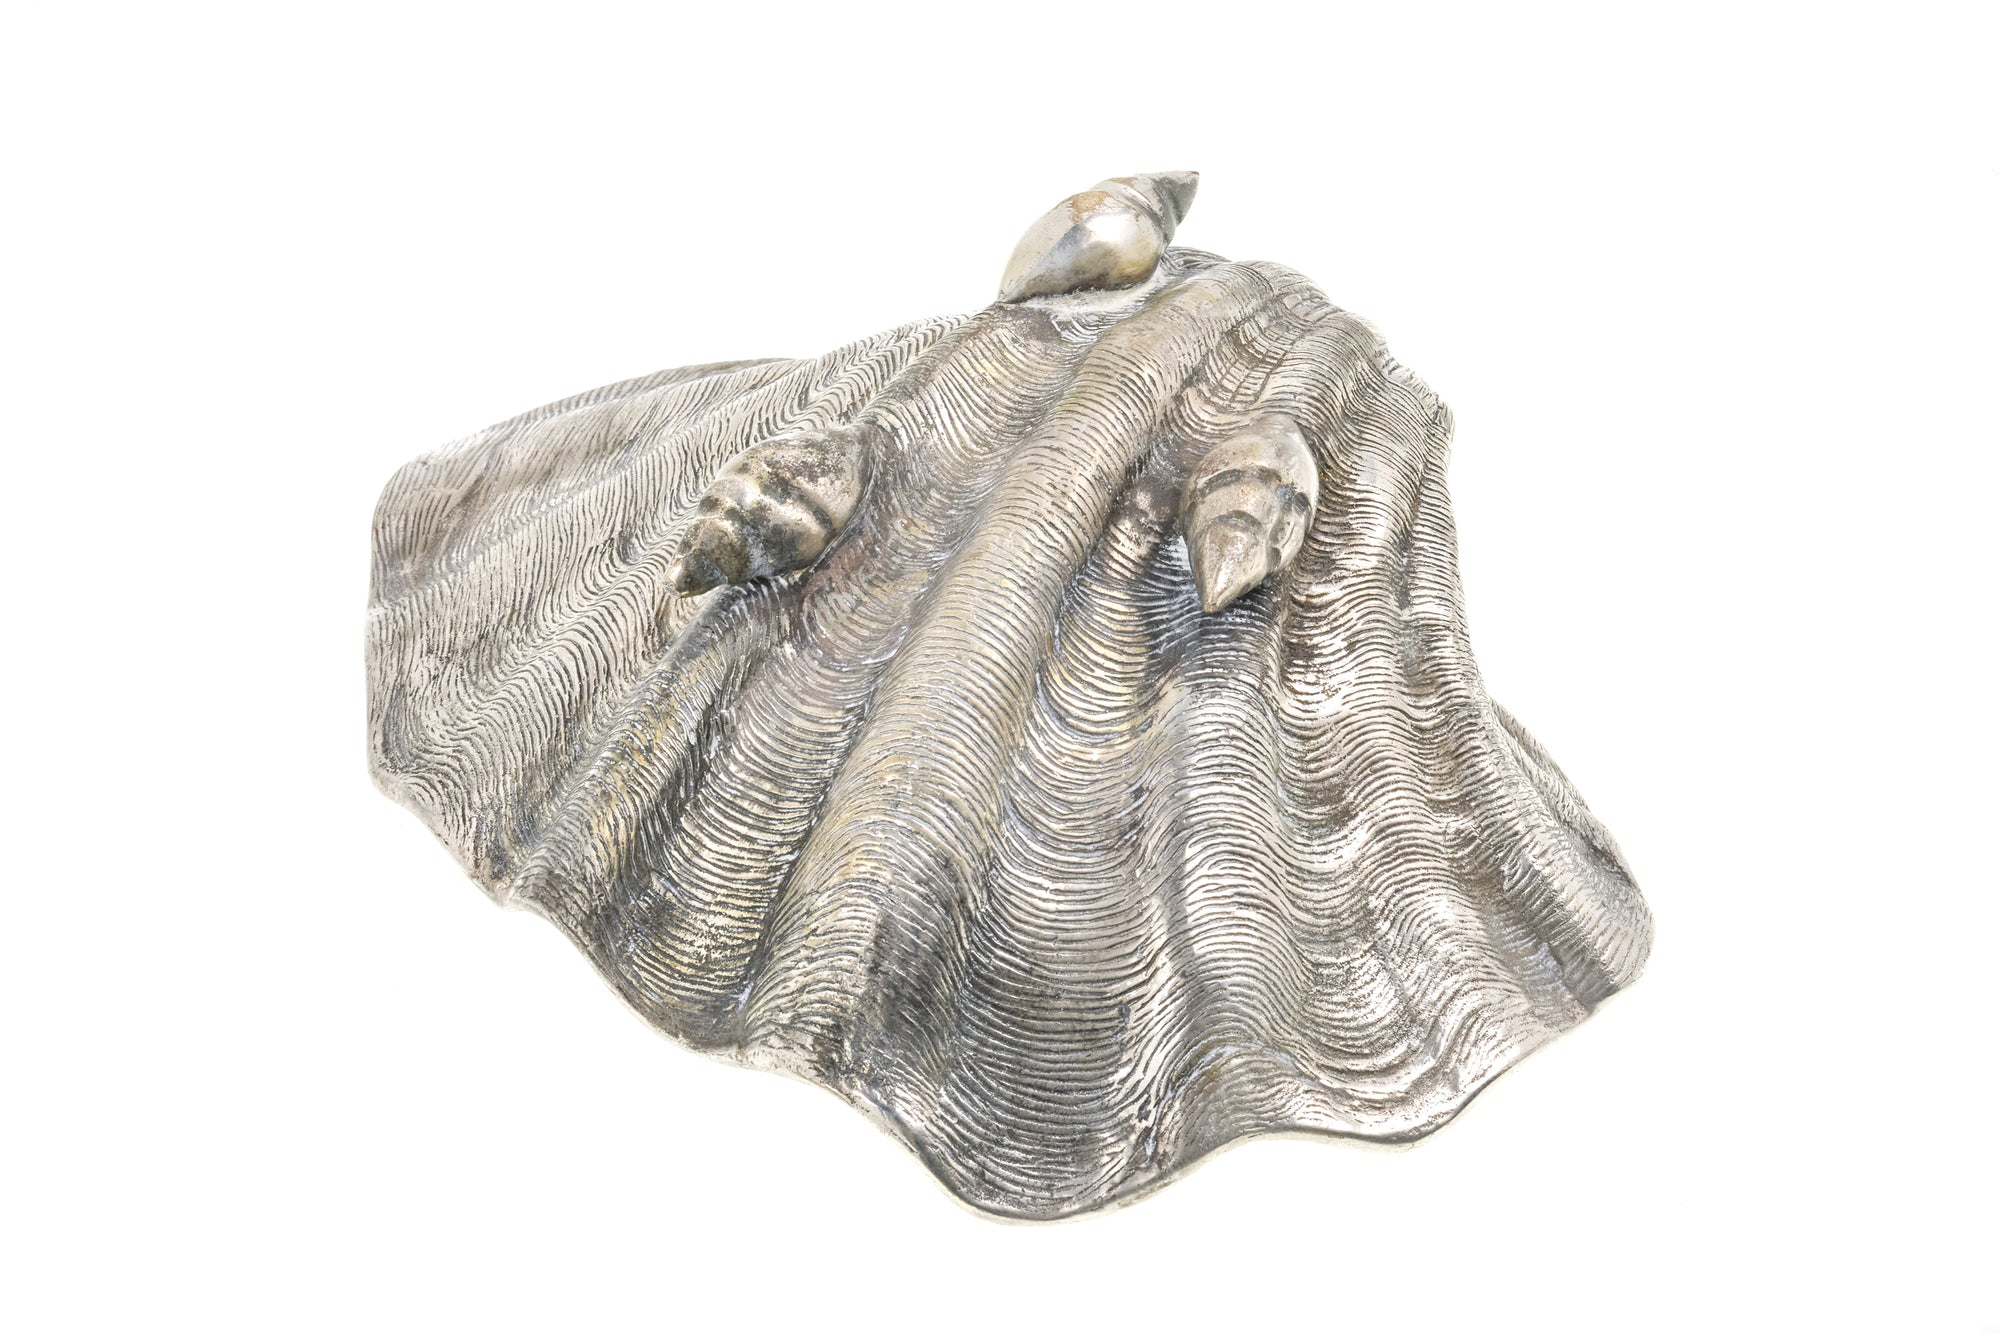 Silver Shell Sculpture